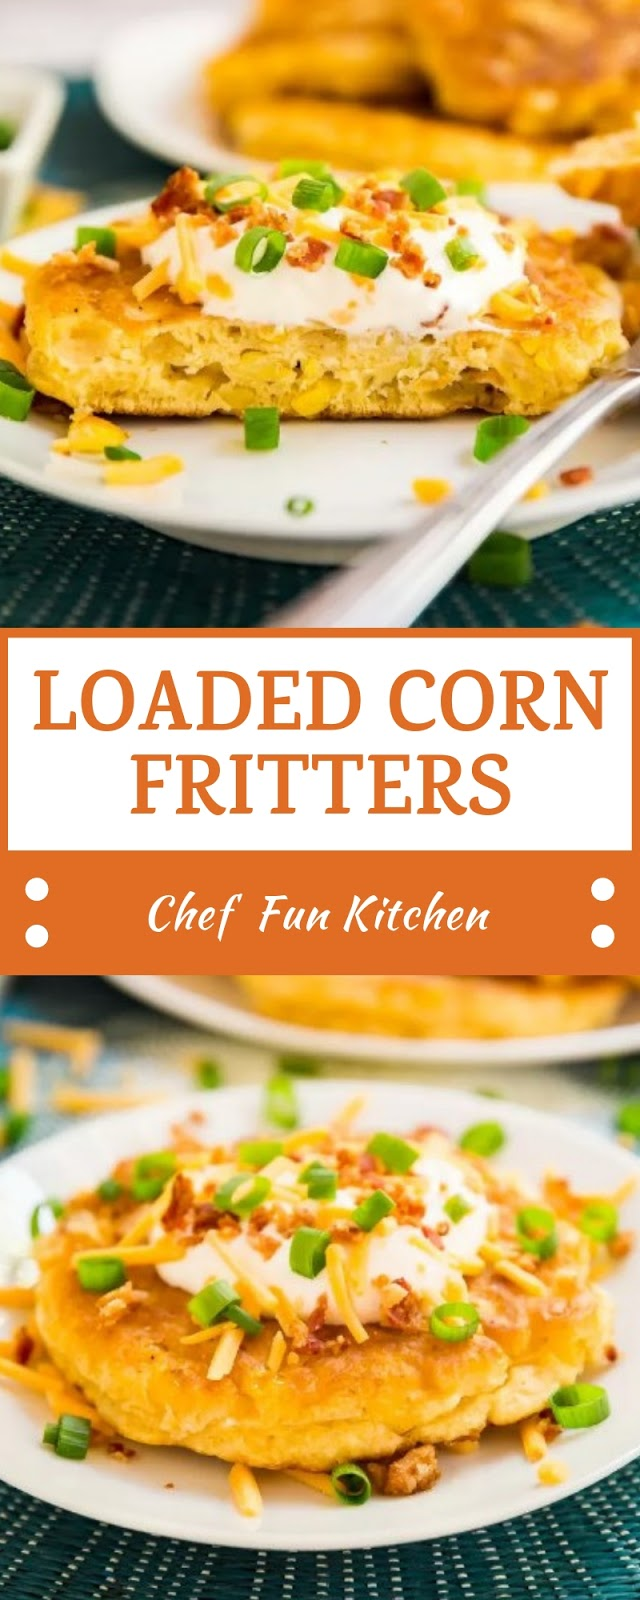 LOADED CORN FRITTERS